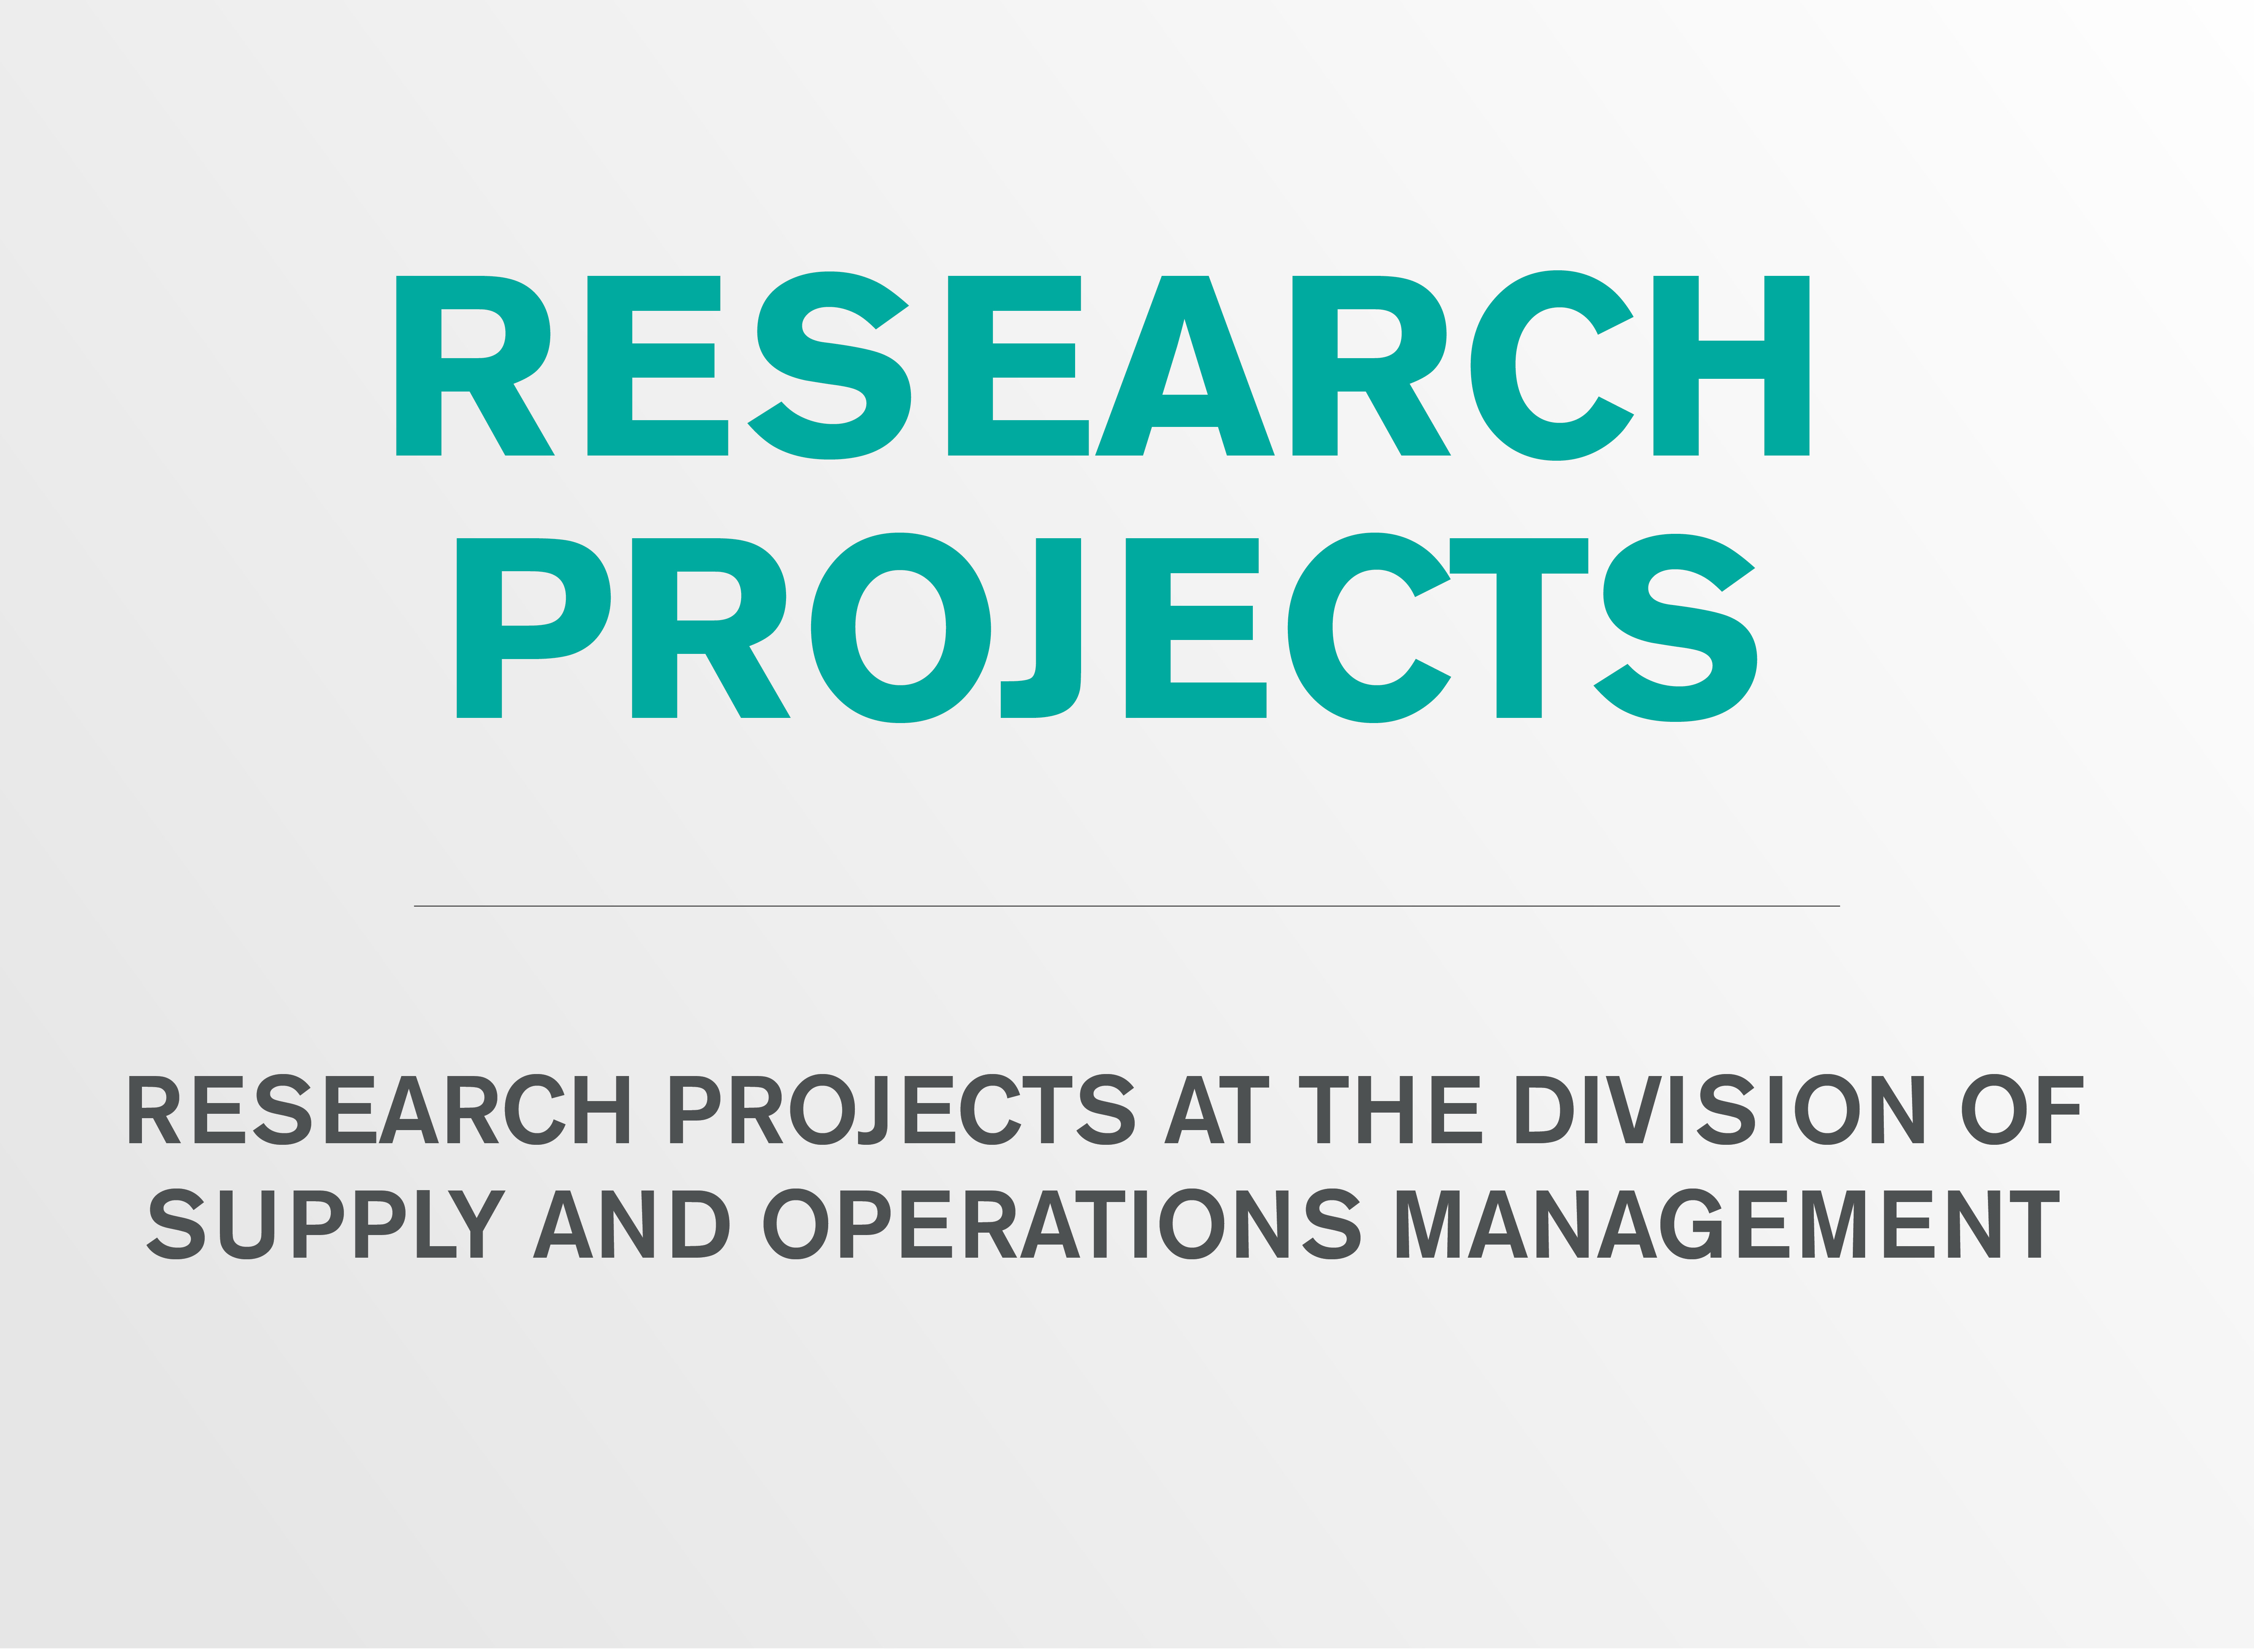 Research projects at the division of Supply and Operations Management.